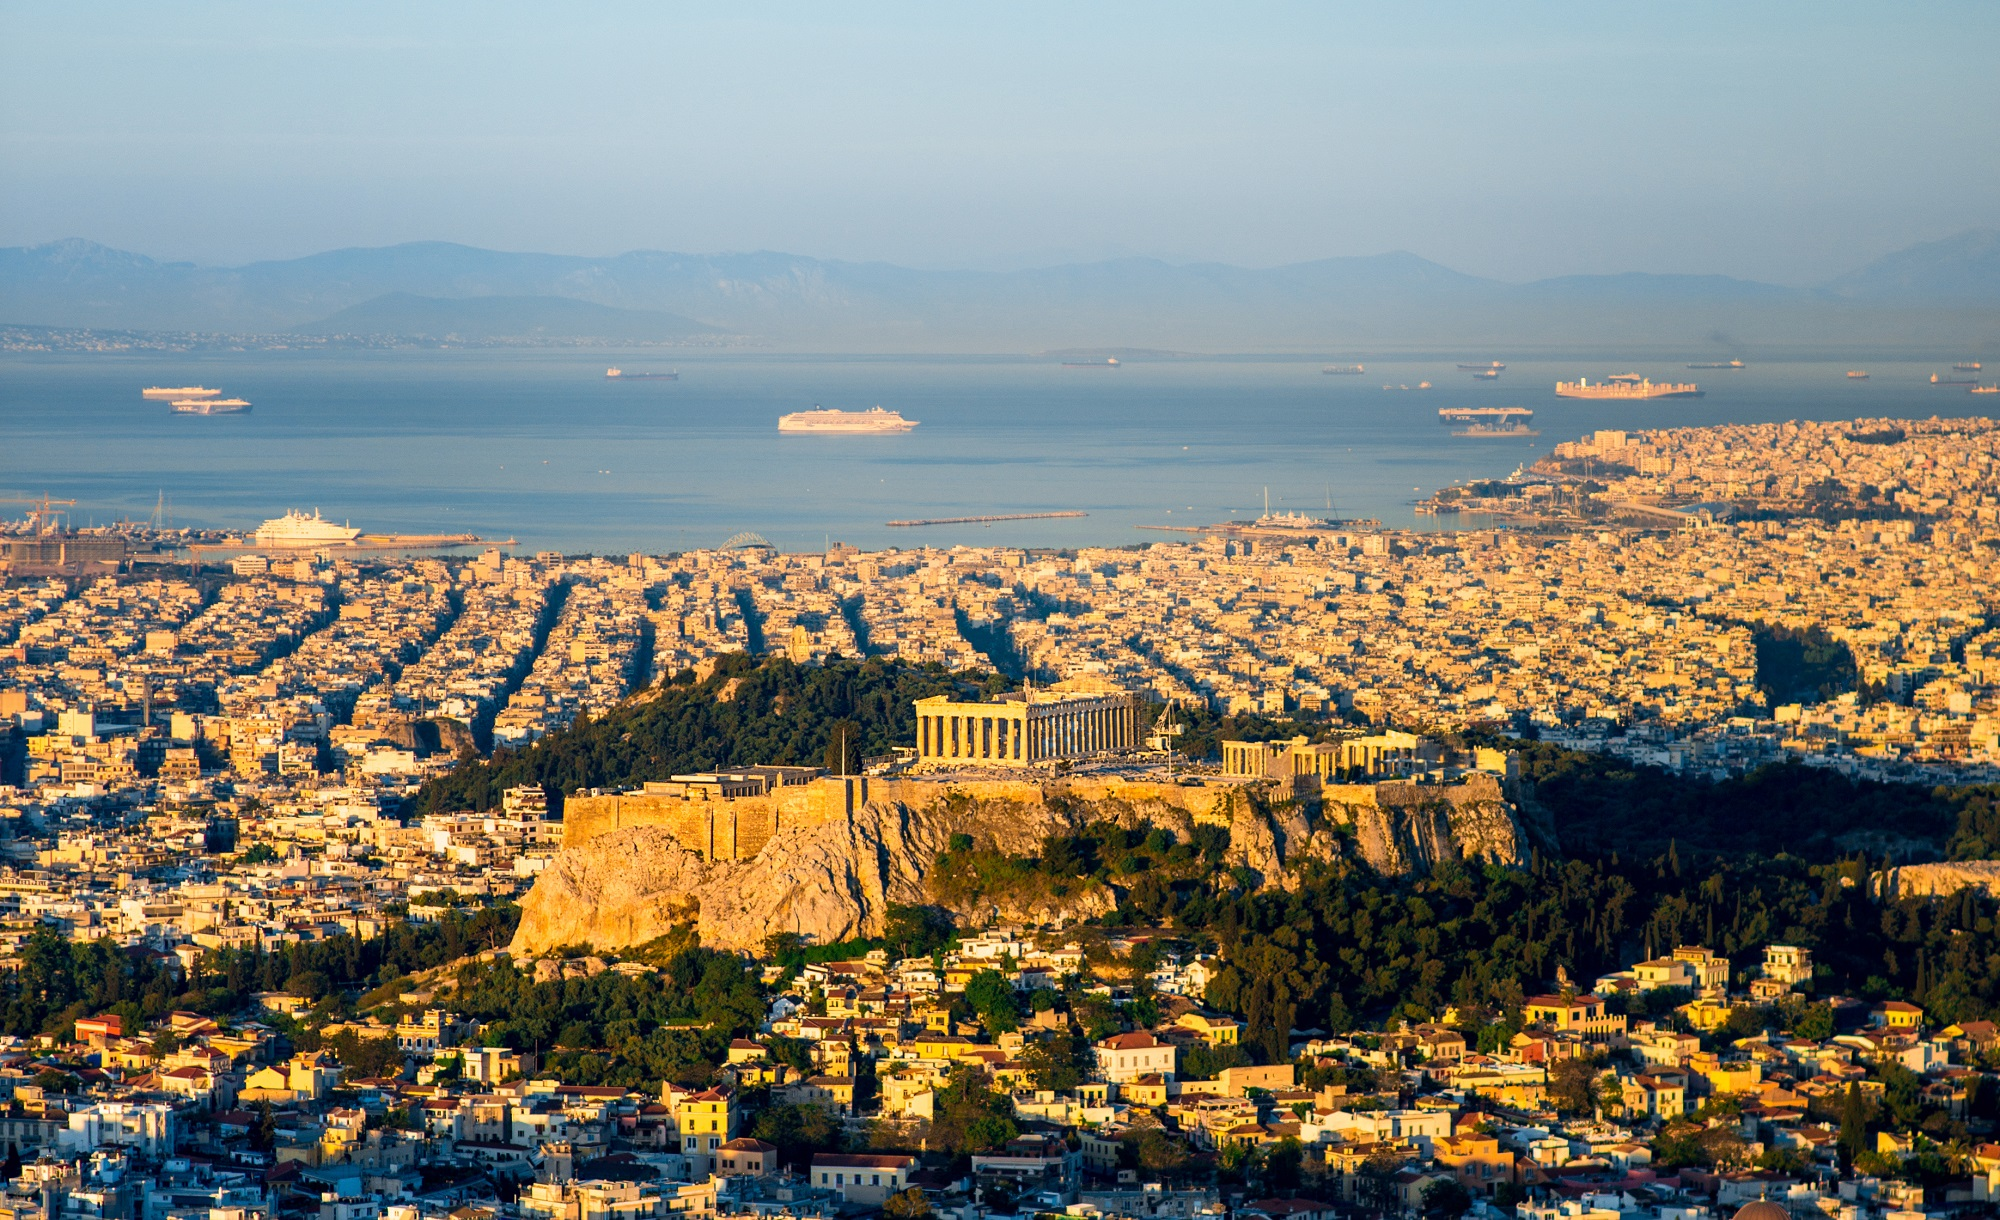 Discover Athens and explore the 2018 Summit venue